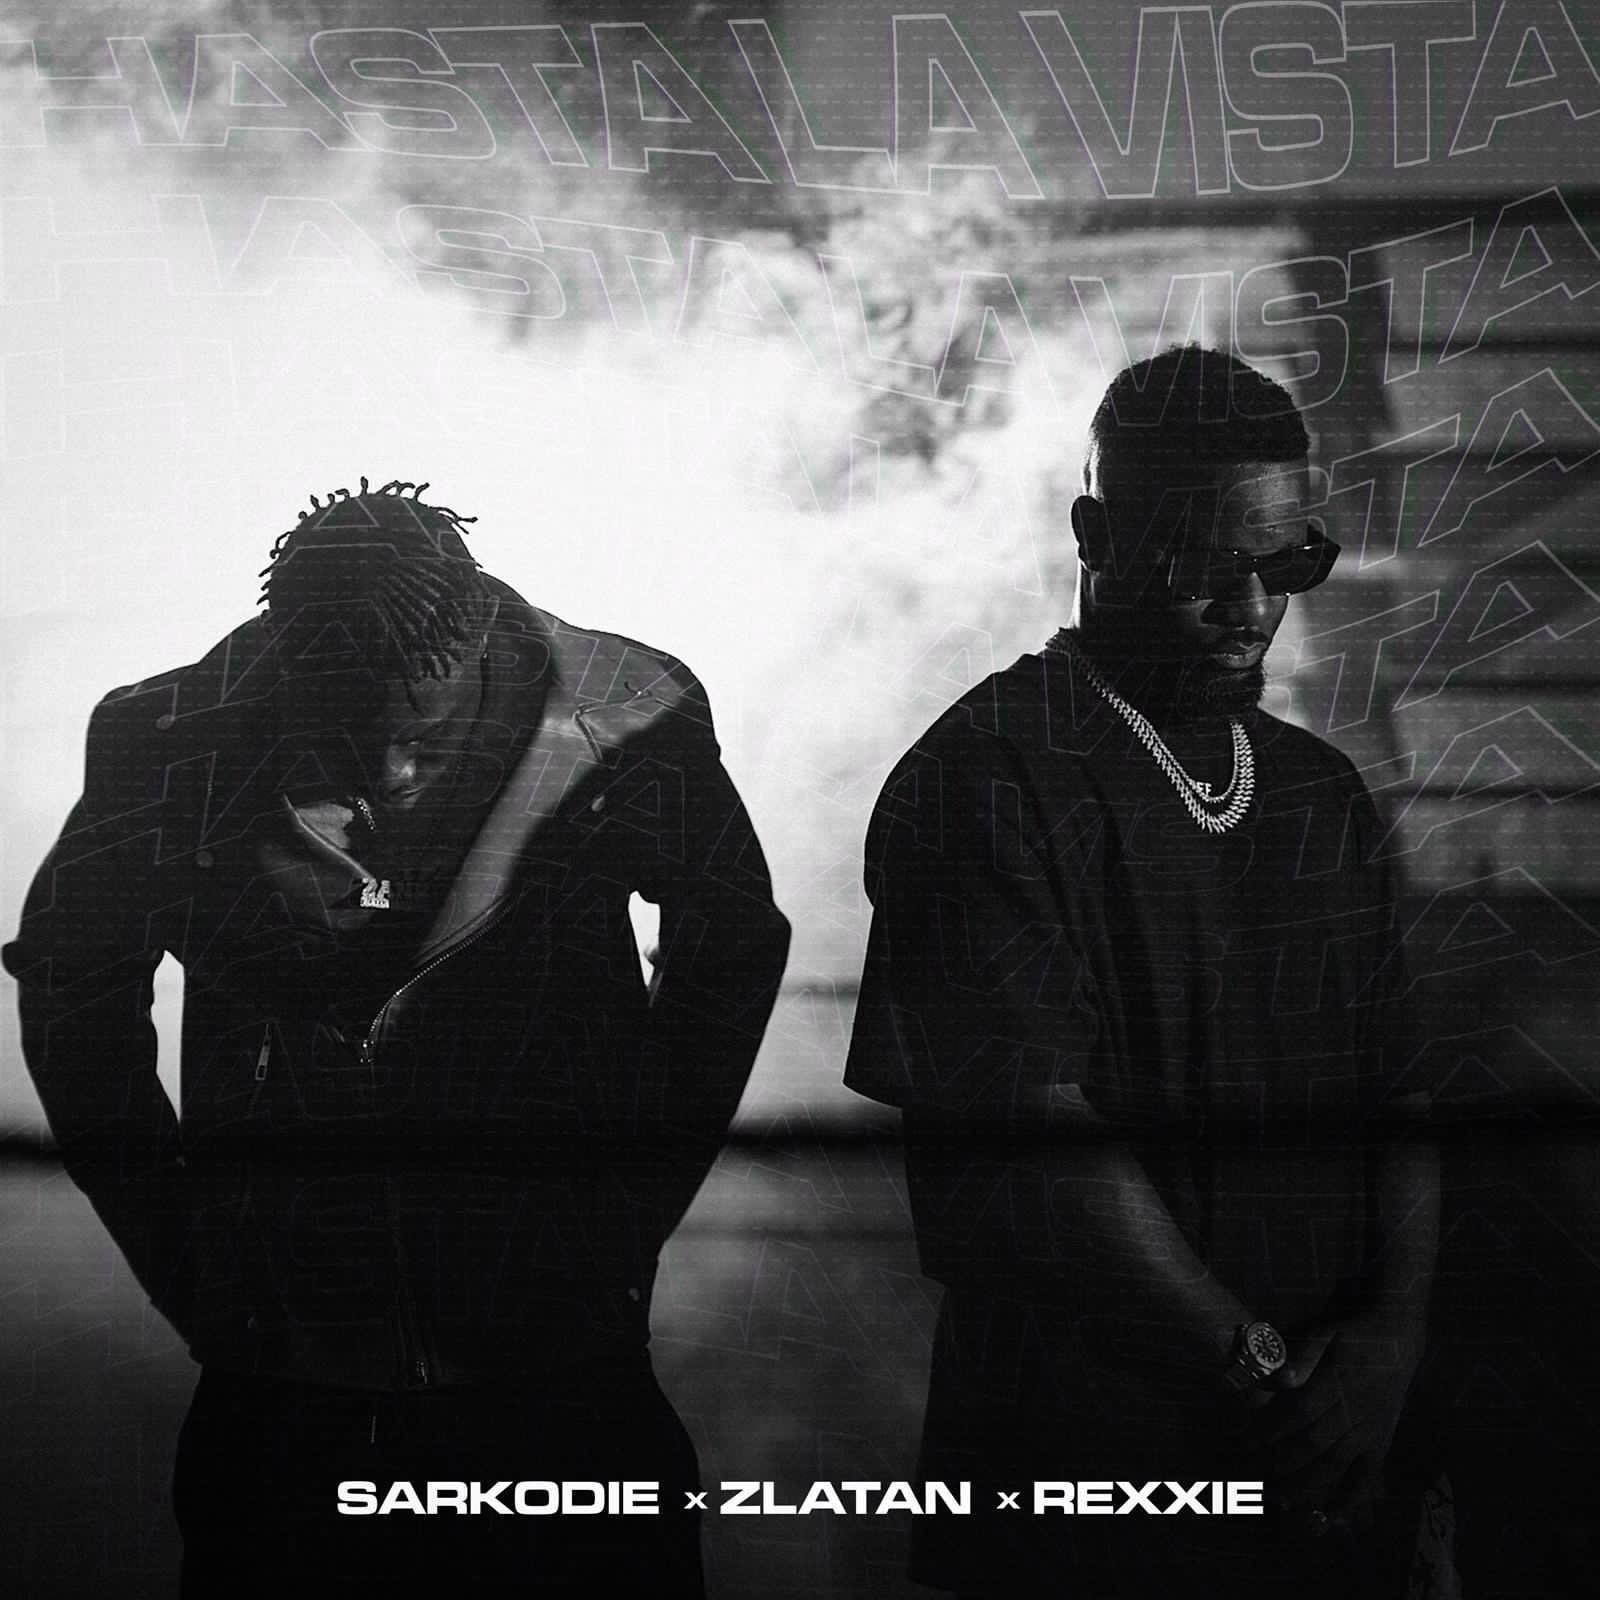 Sarkodie - Hasta La Vista Instrumental ft Zlatan